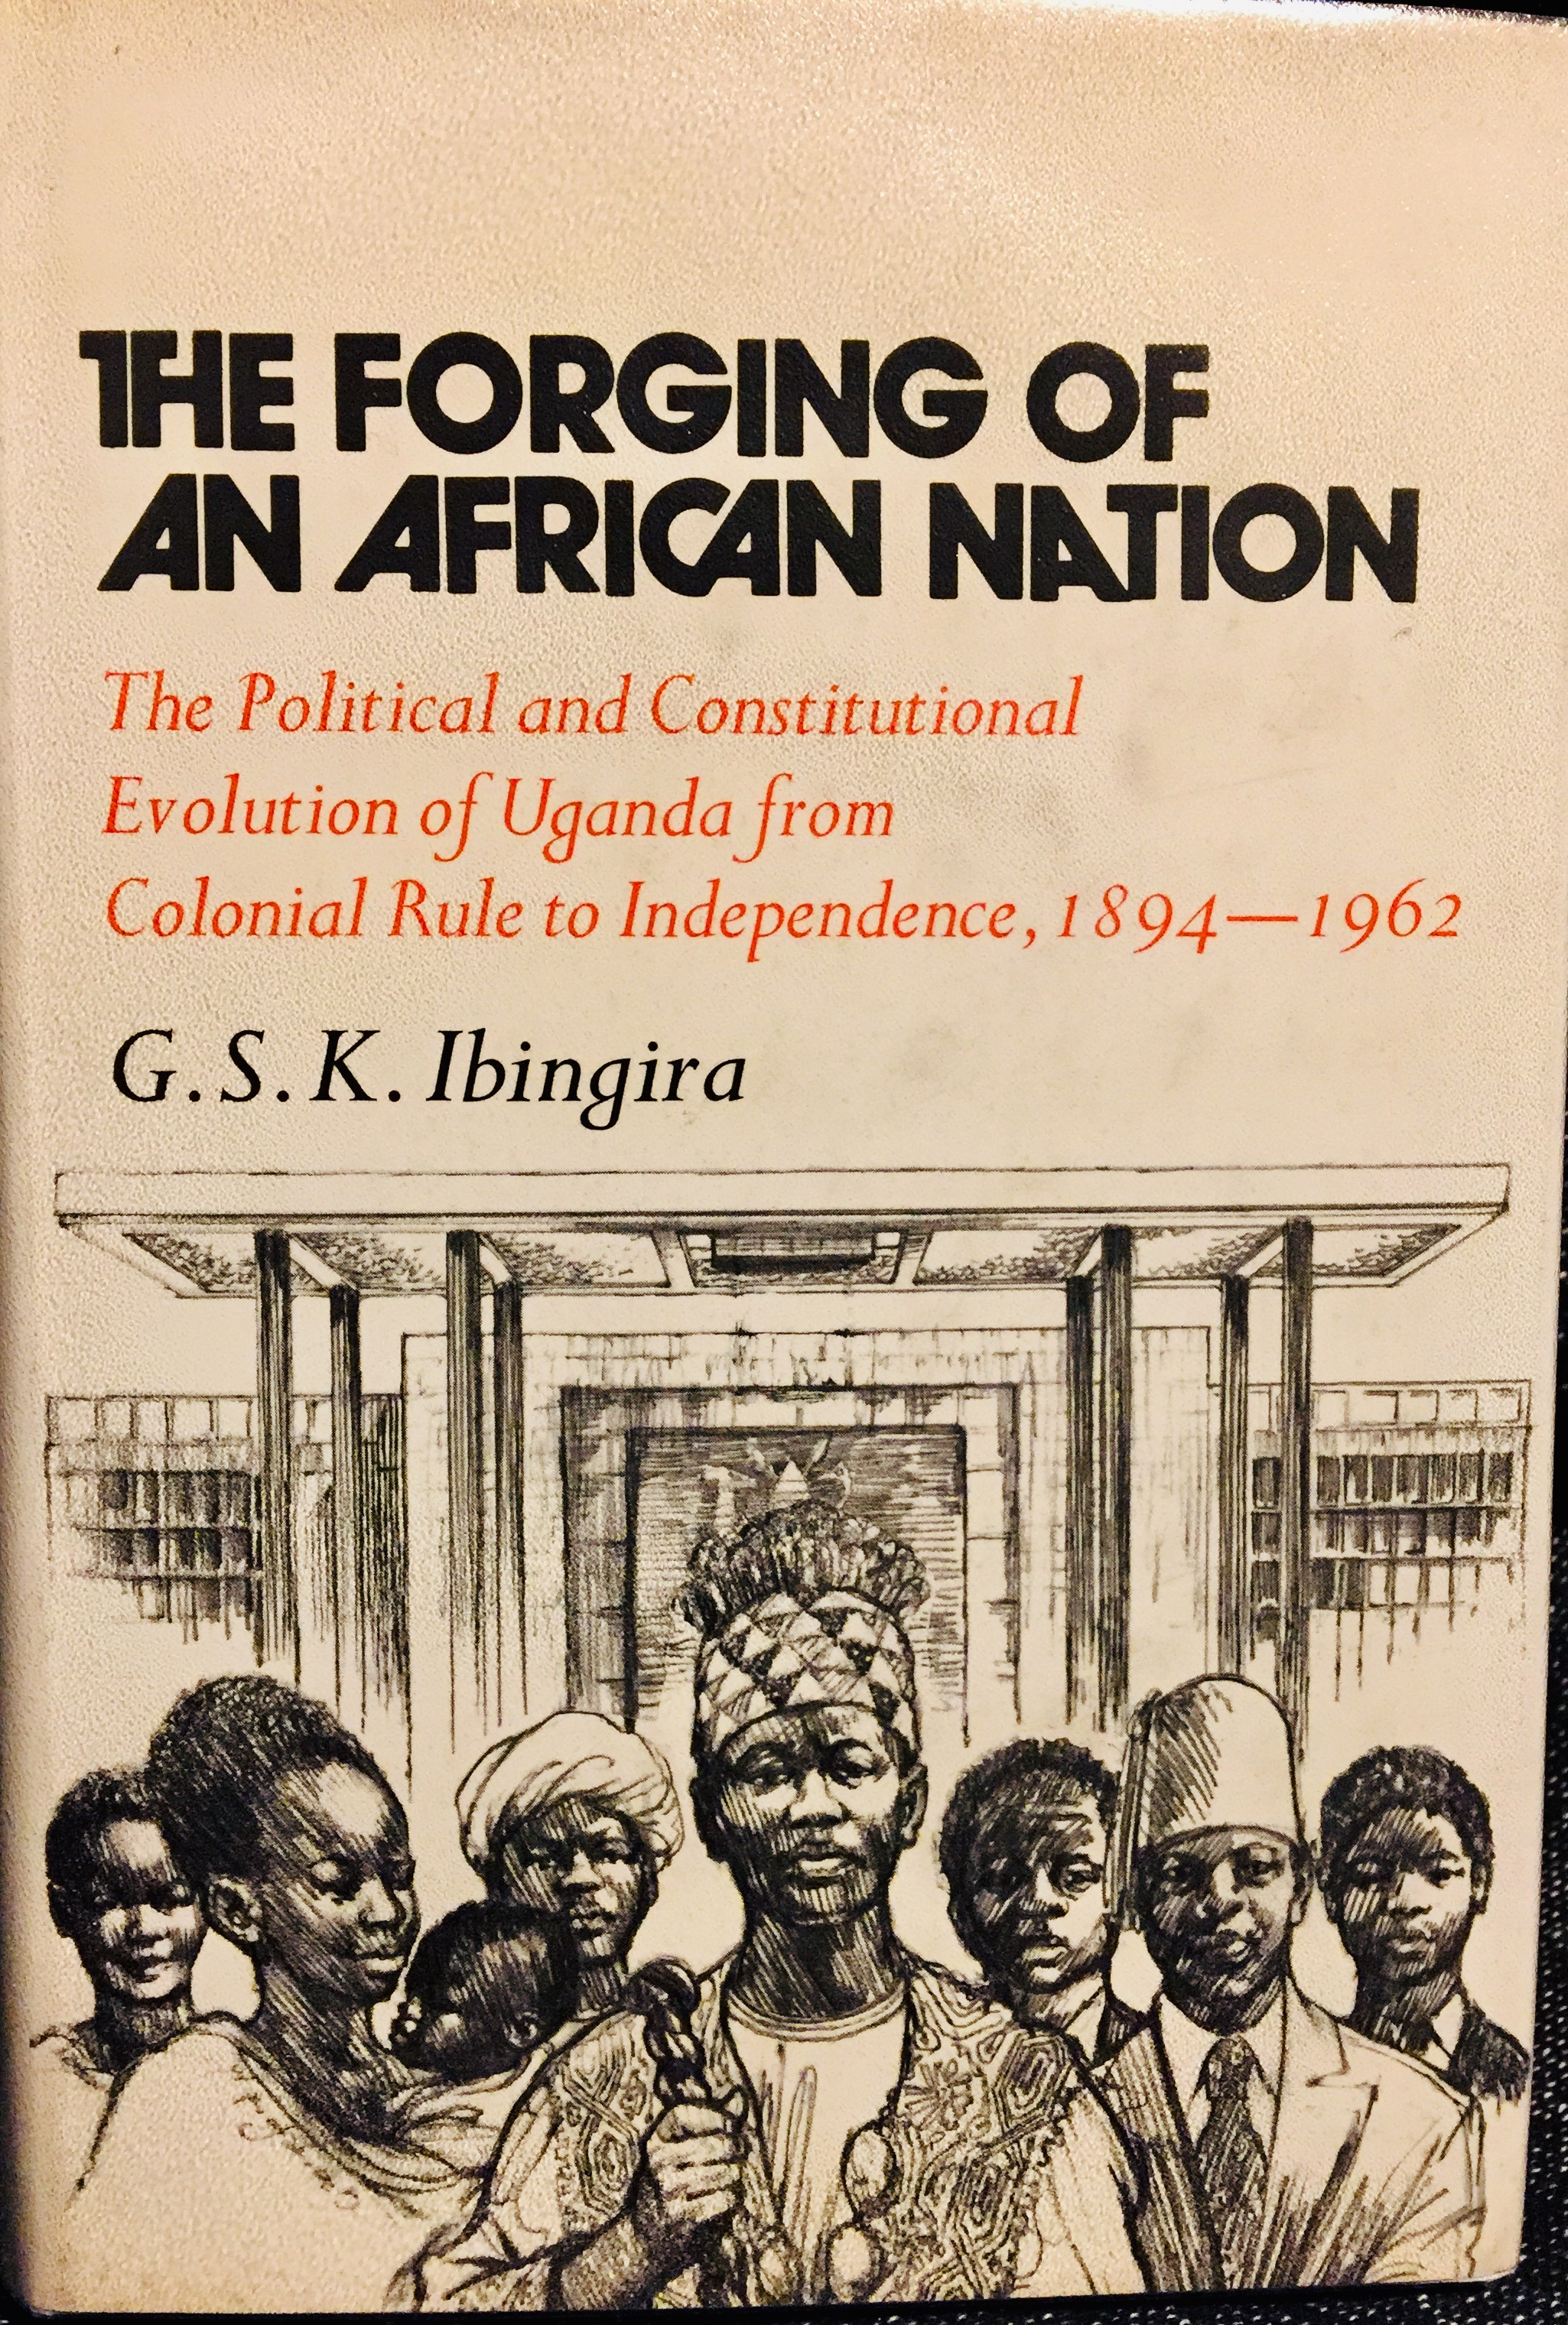 The Forging of an African Nation: The Political and Constitutional Evolution of Uganda from Colonial Rule to Independence, 1894-1962 – By G.S.K Ibingira (1973)